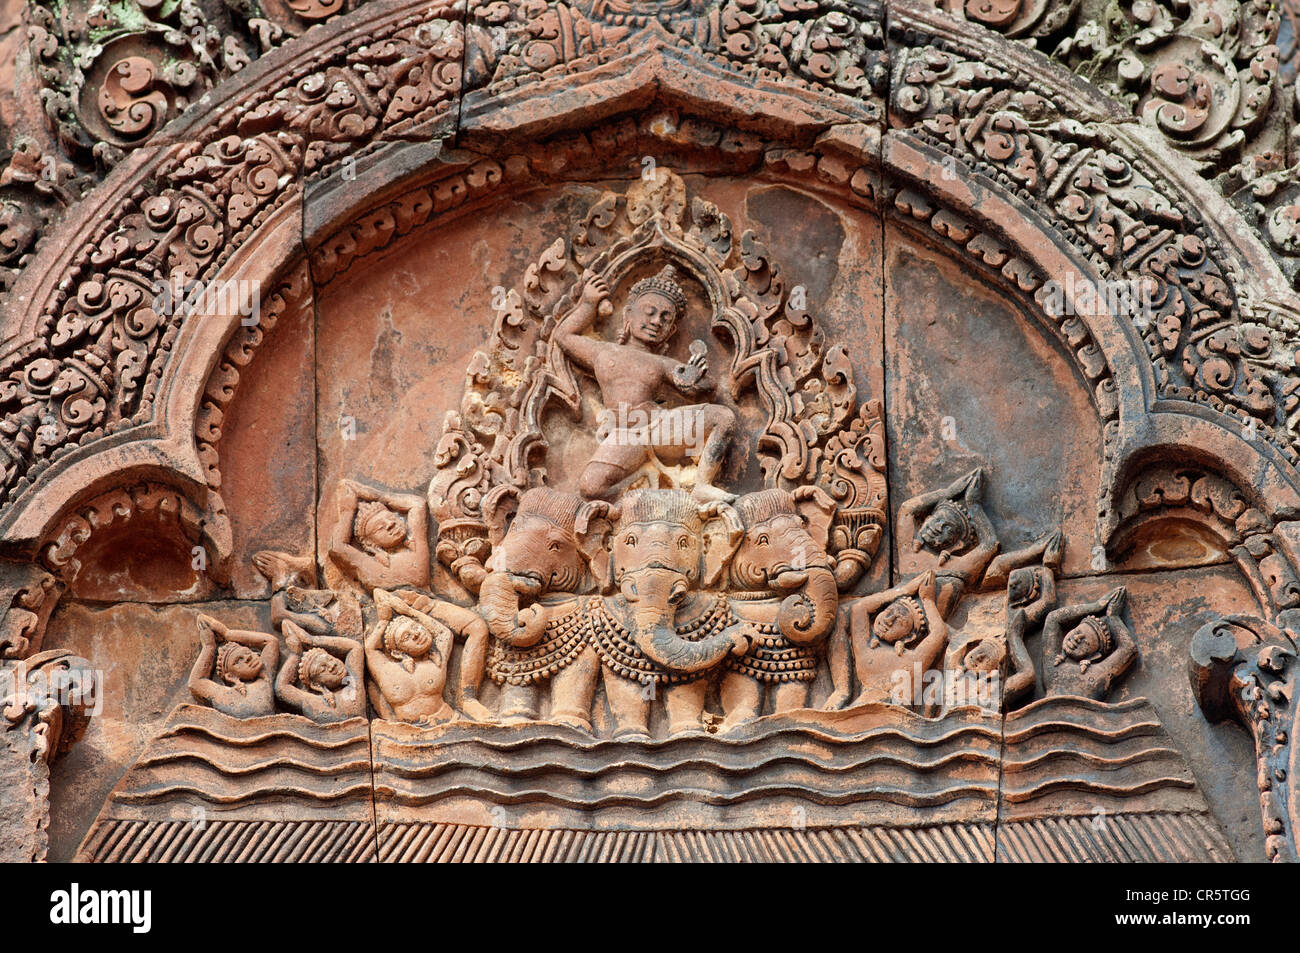 Indra, god of the sky, riding a chariot drawn by a three-headed elephant, part of the bas-reliefs of the east-facing - Stock Image